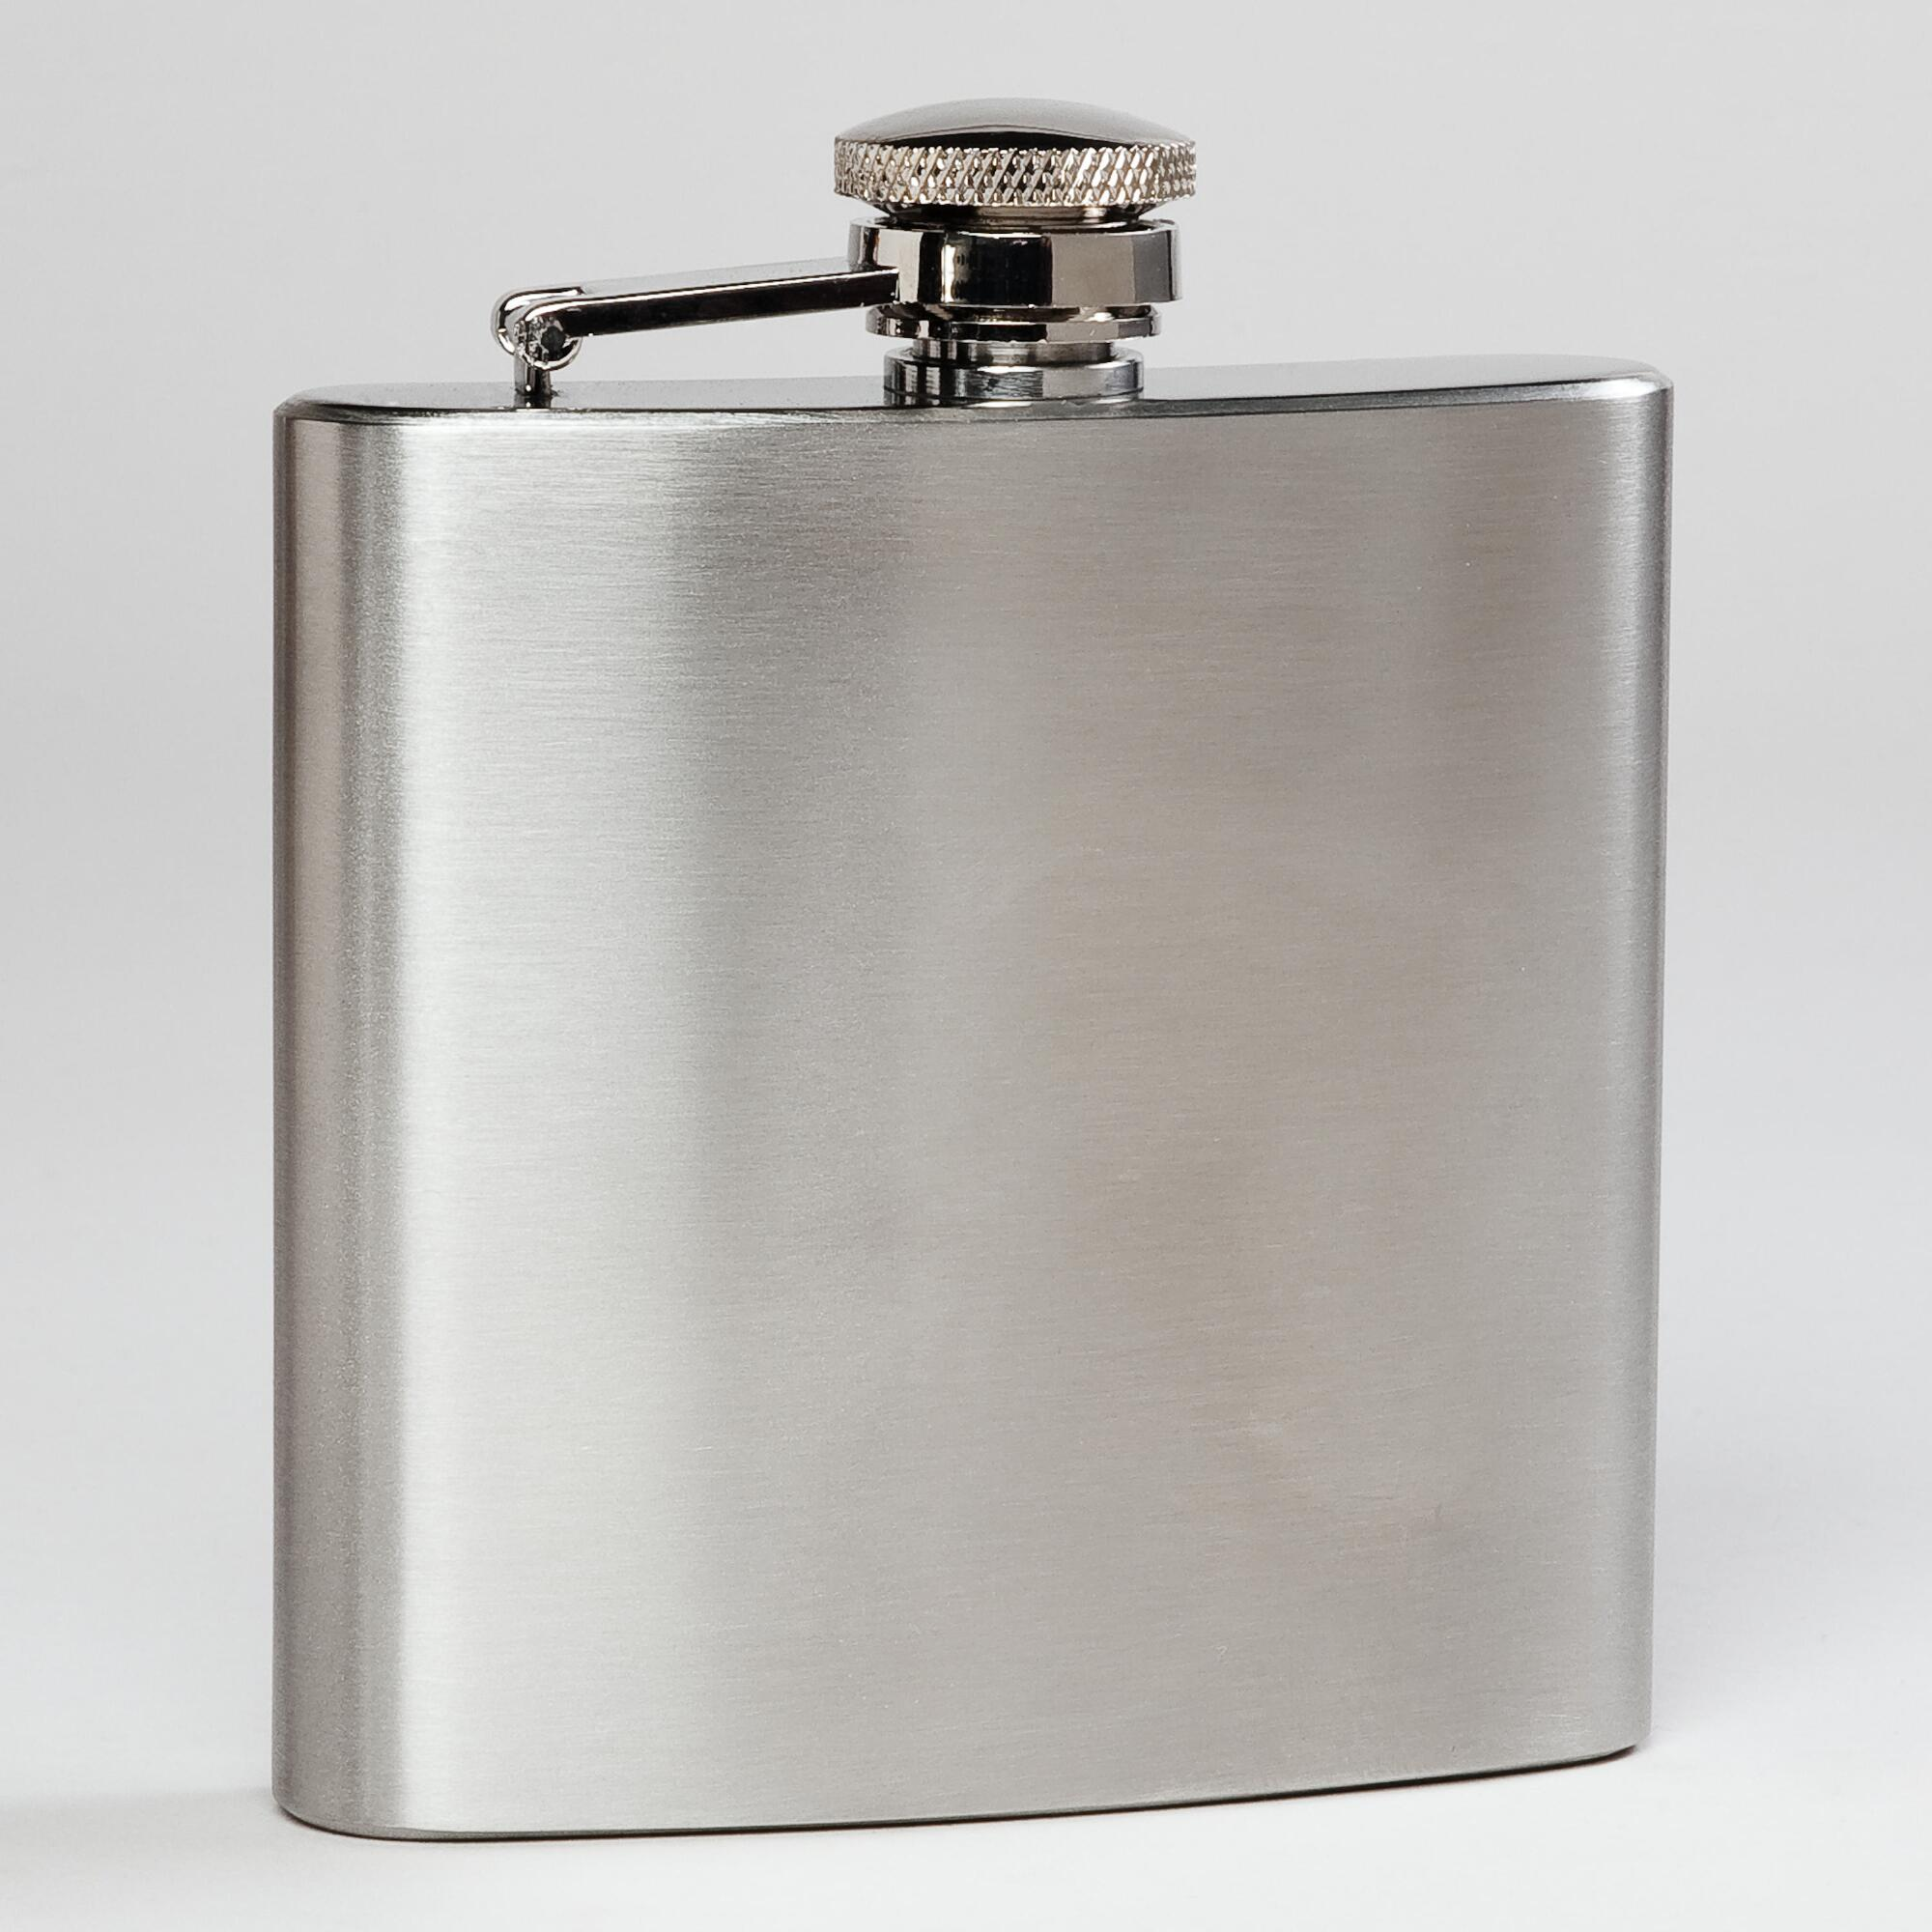 Outdoor Lighting Stores picture on stainless steel flask with Outdoor Lighting Stores, Outdoor Lighting ideas ba48e3bddfd8b7160acdedcad3055780